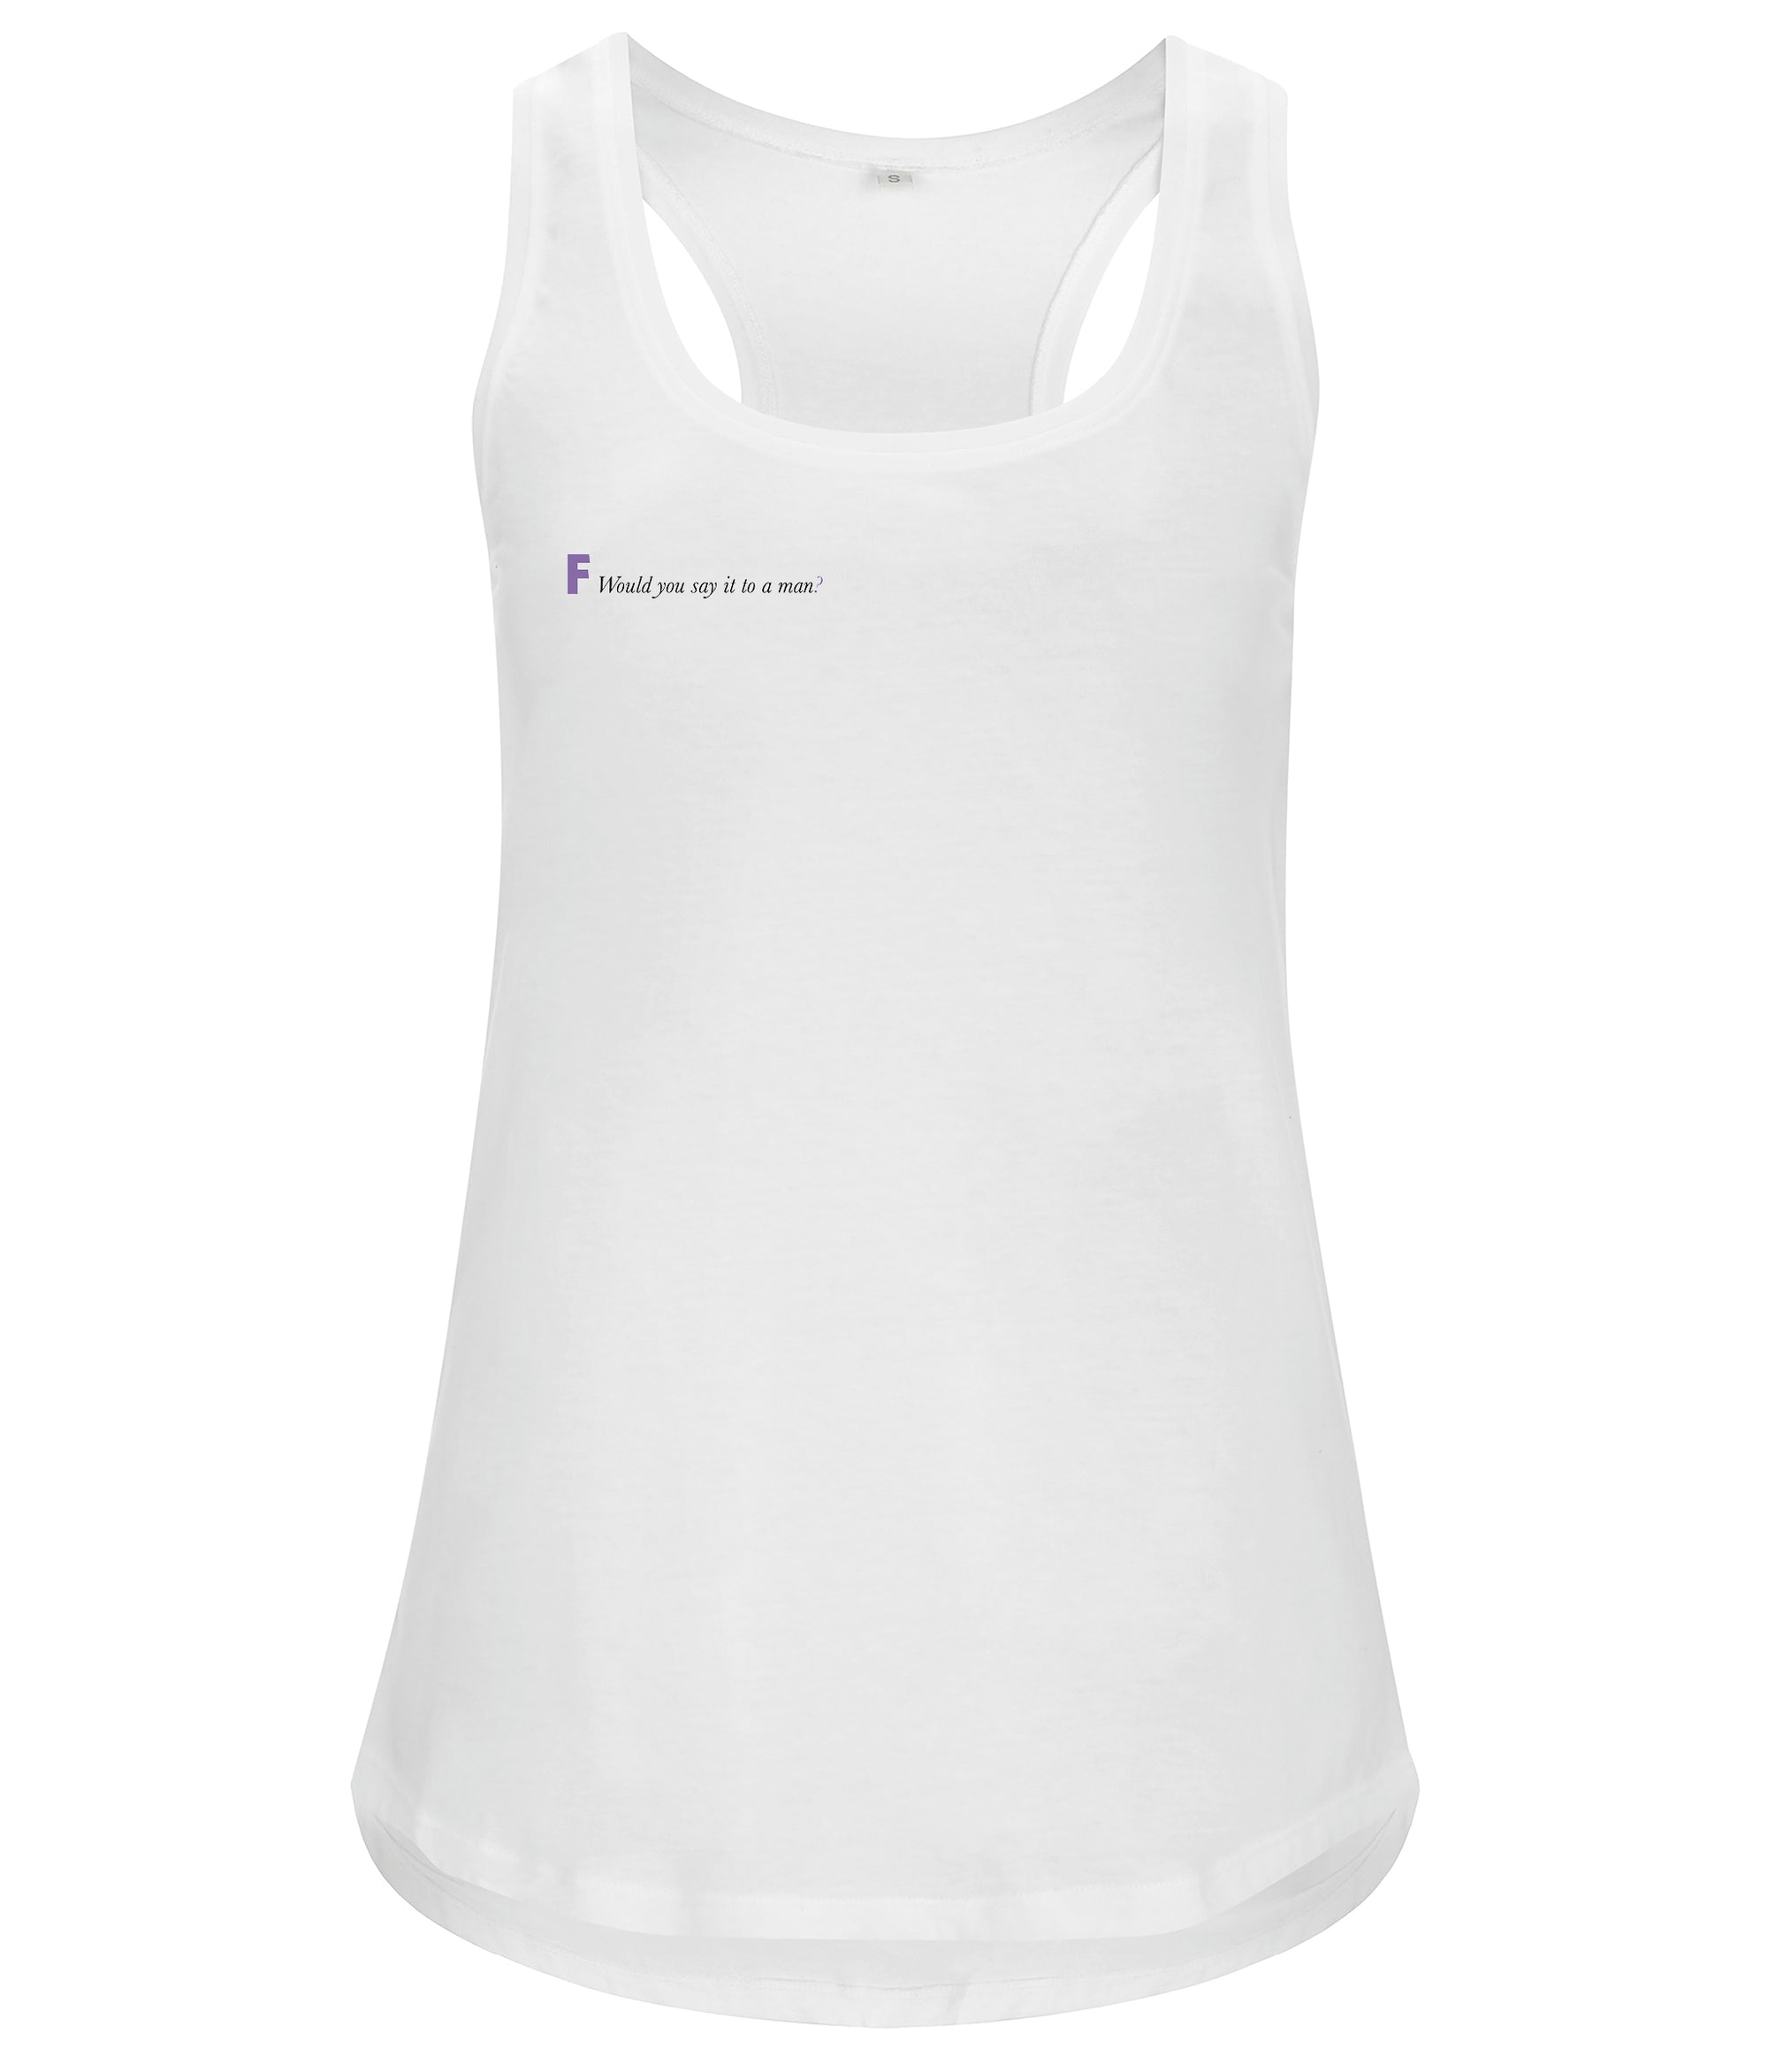 Would You Say It To A Man Organic Feminist Racerback Vest White